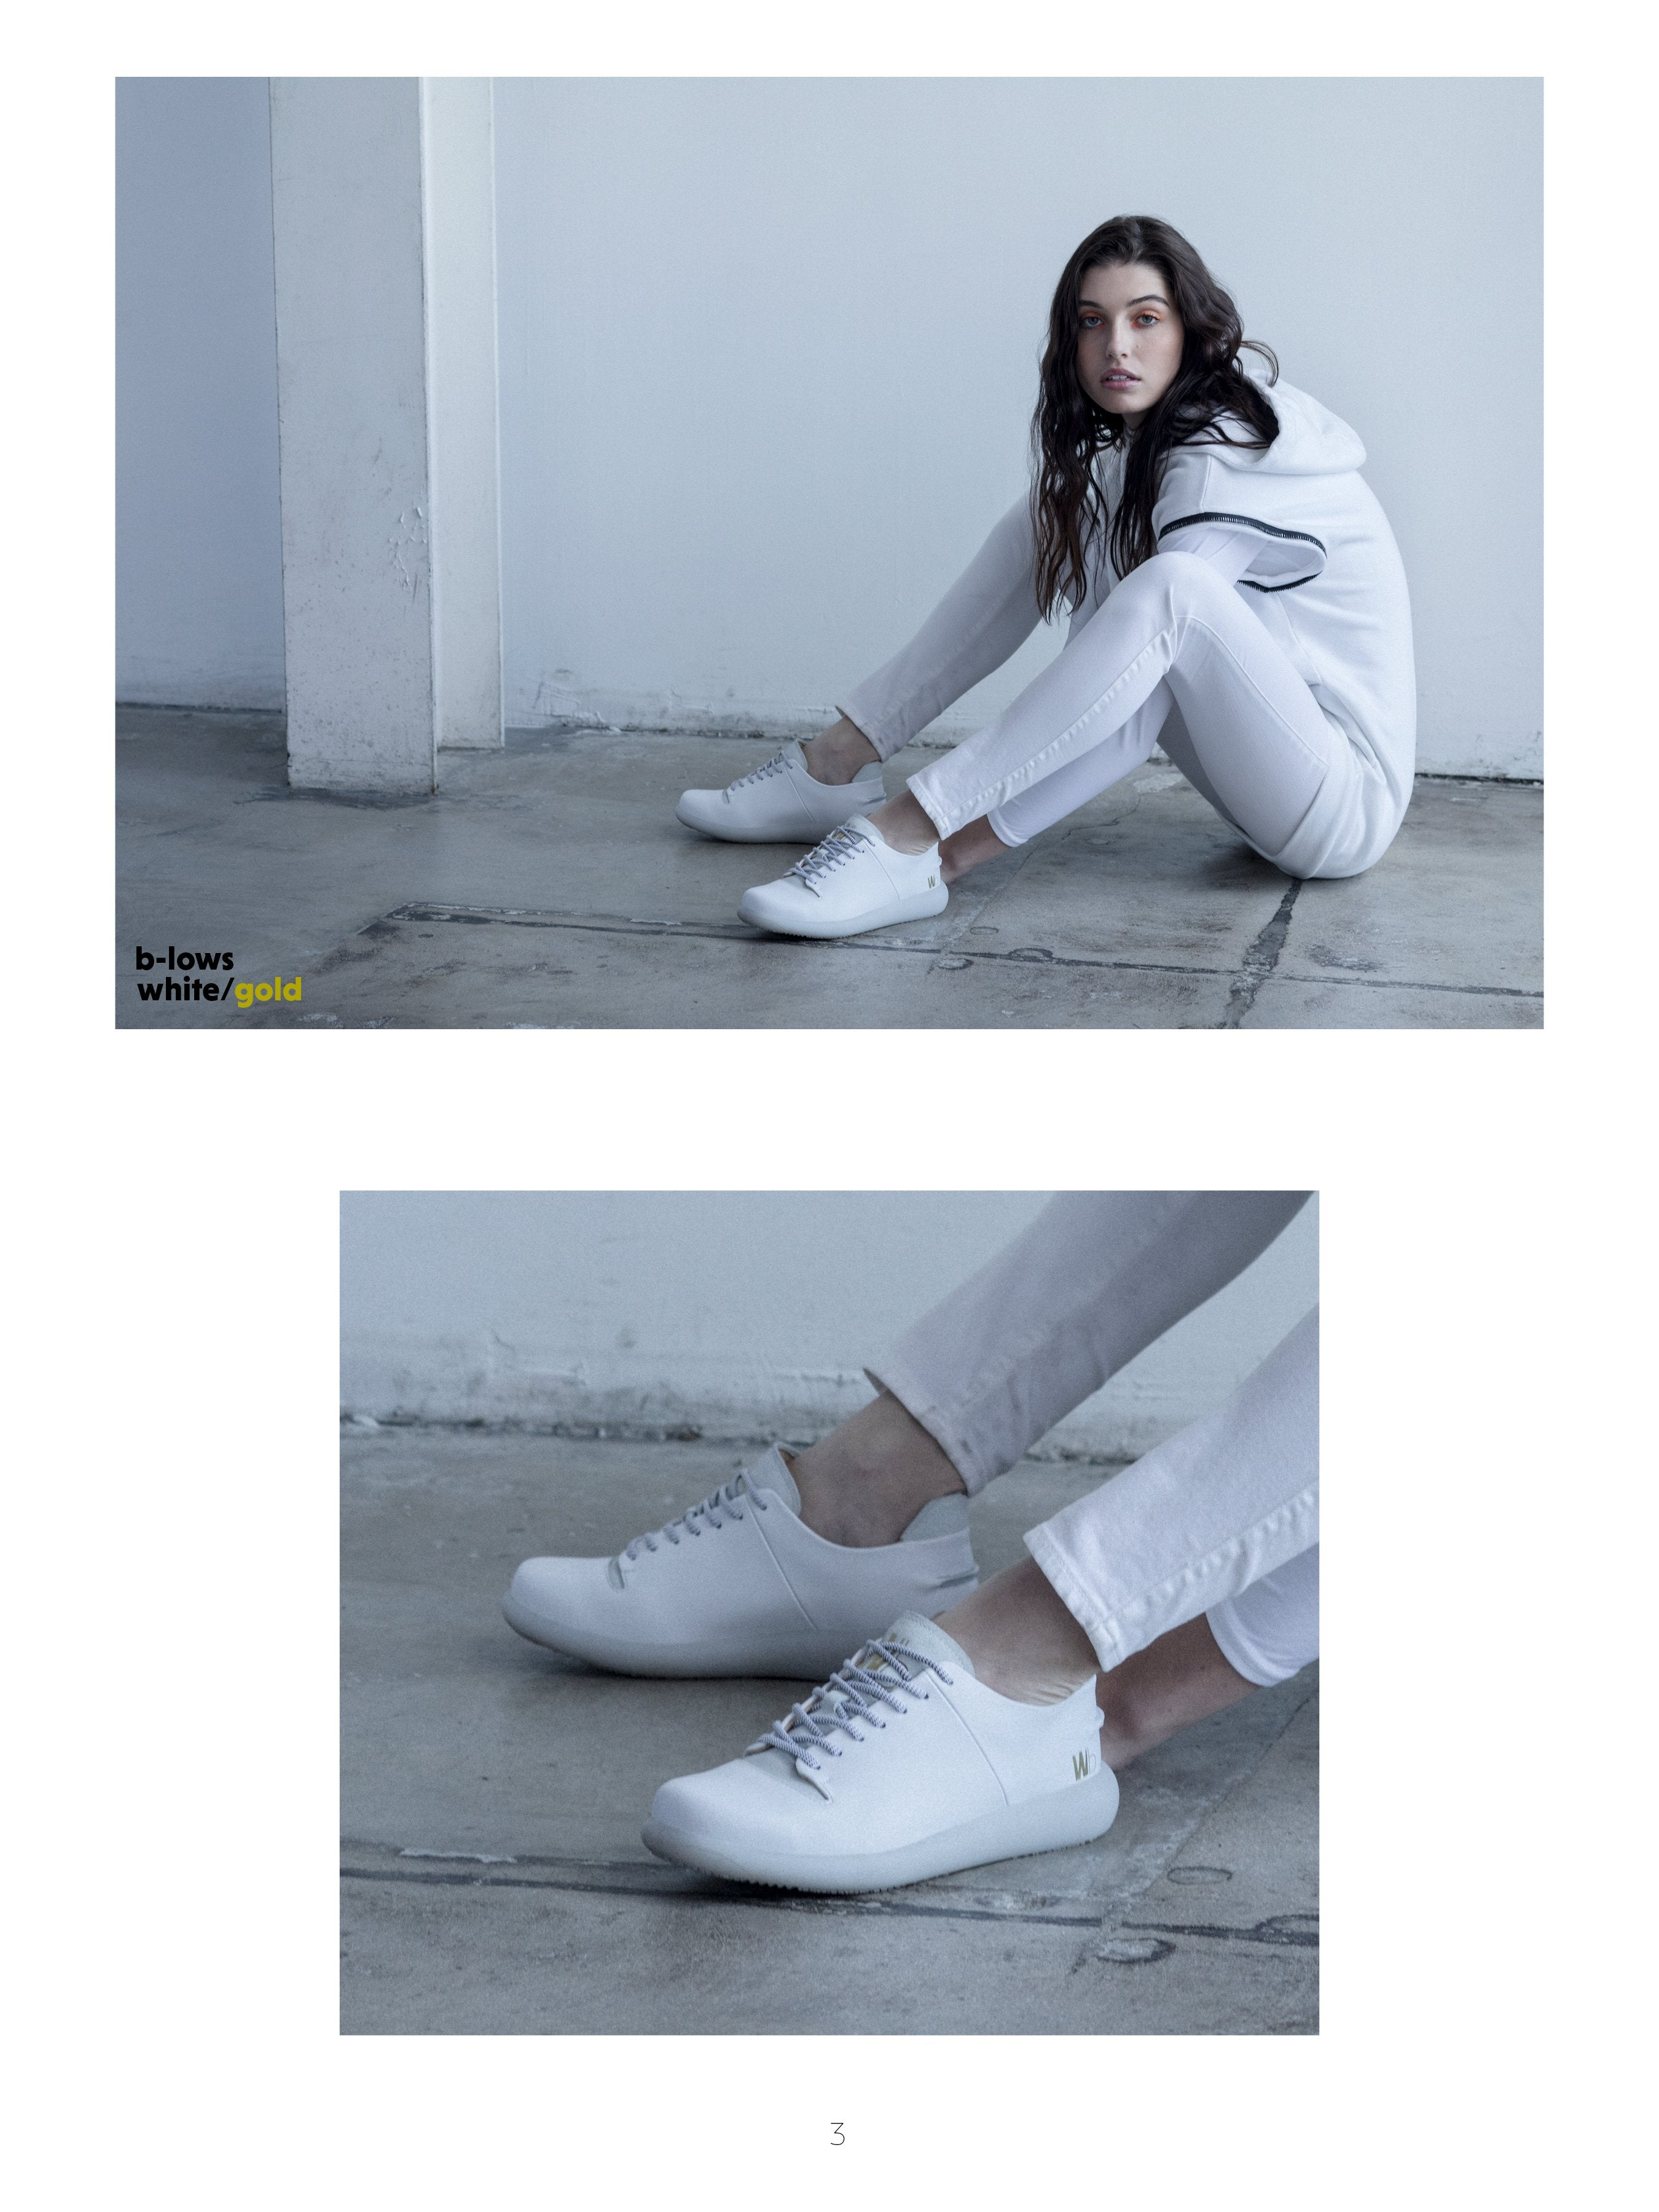 Photo Shoot & Fashion LookBook Featuring B-Lows White Sneakers 4